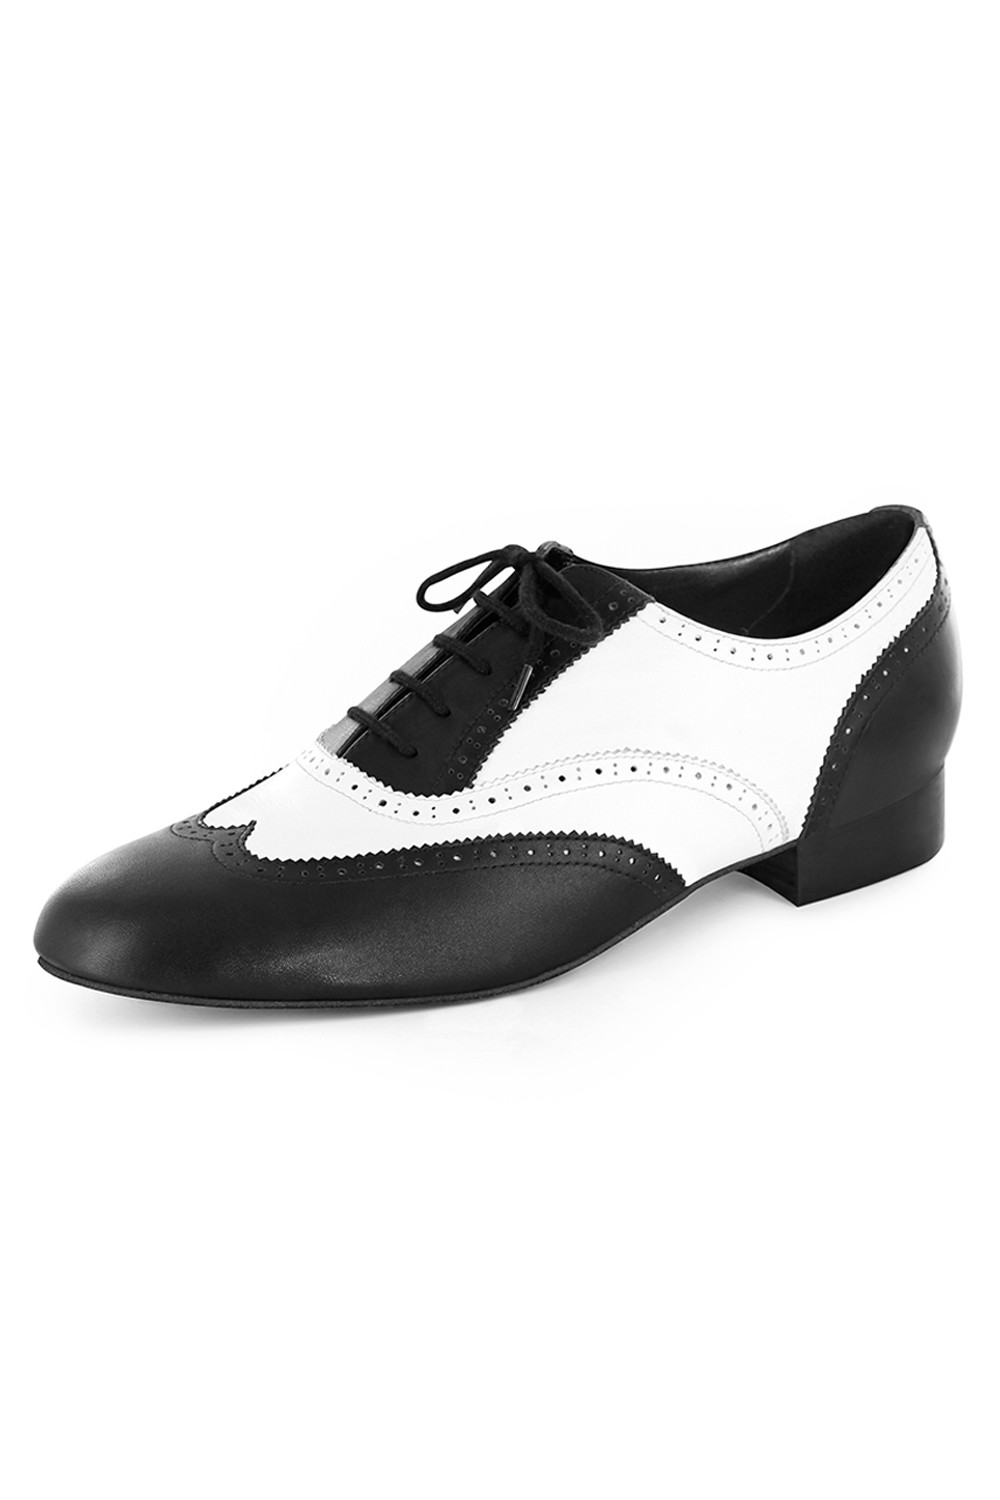 Men's Ballroom & Latin Dance Shoes